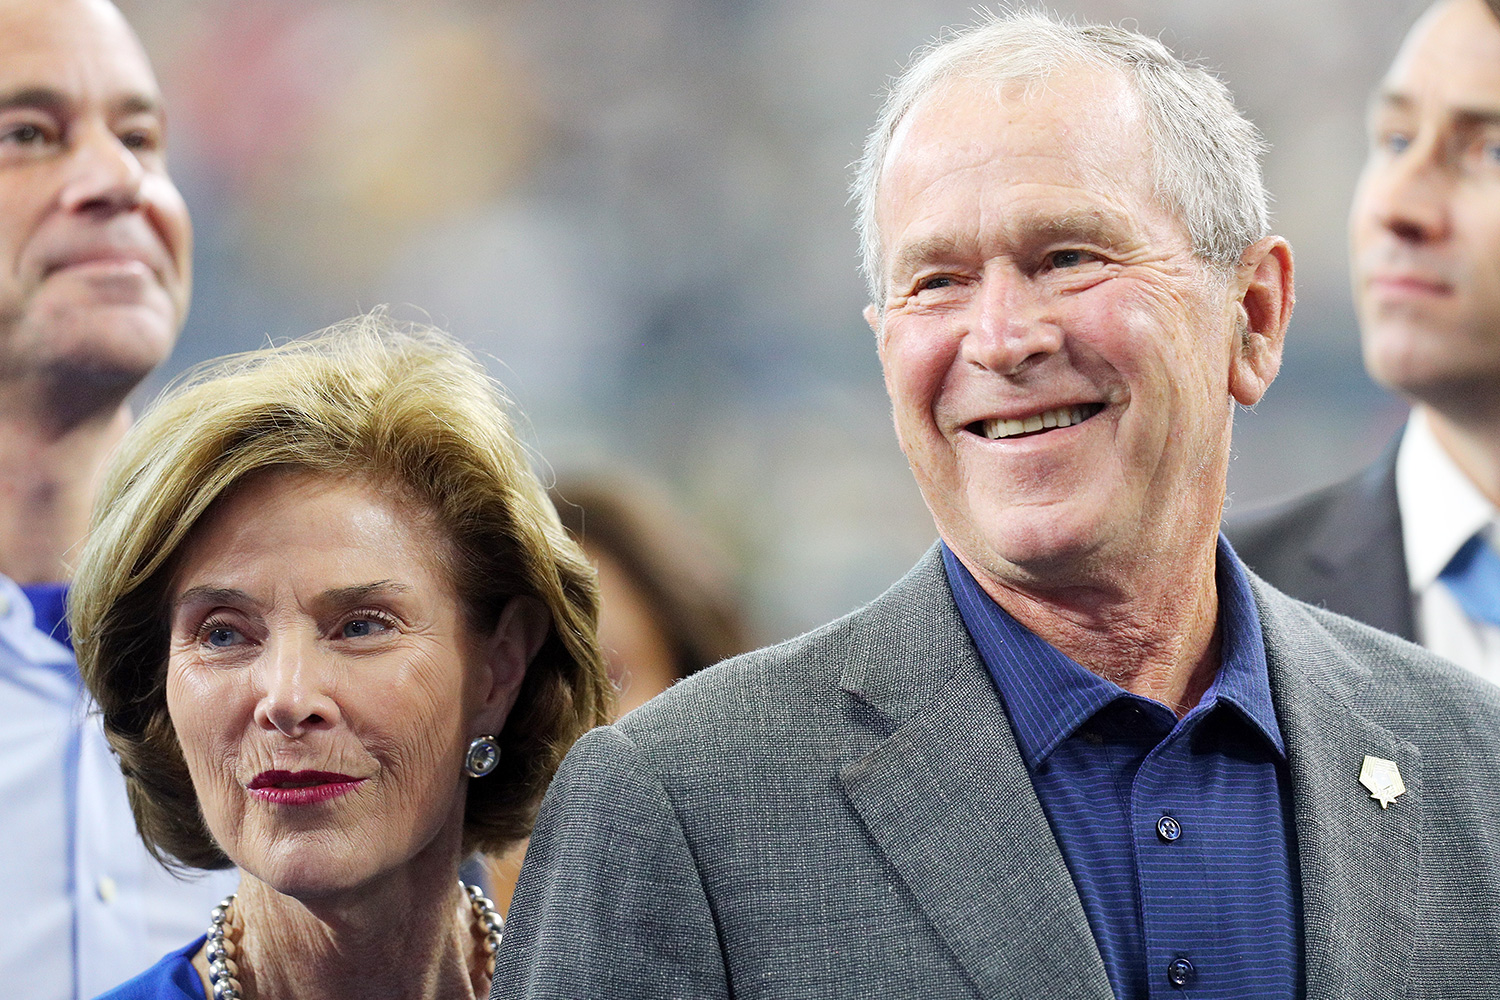 Former First Lady Laura Bush and former President George W. Bush